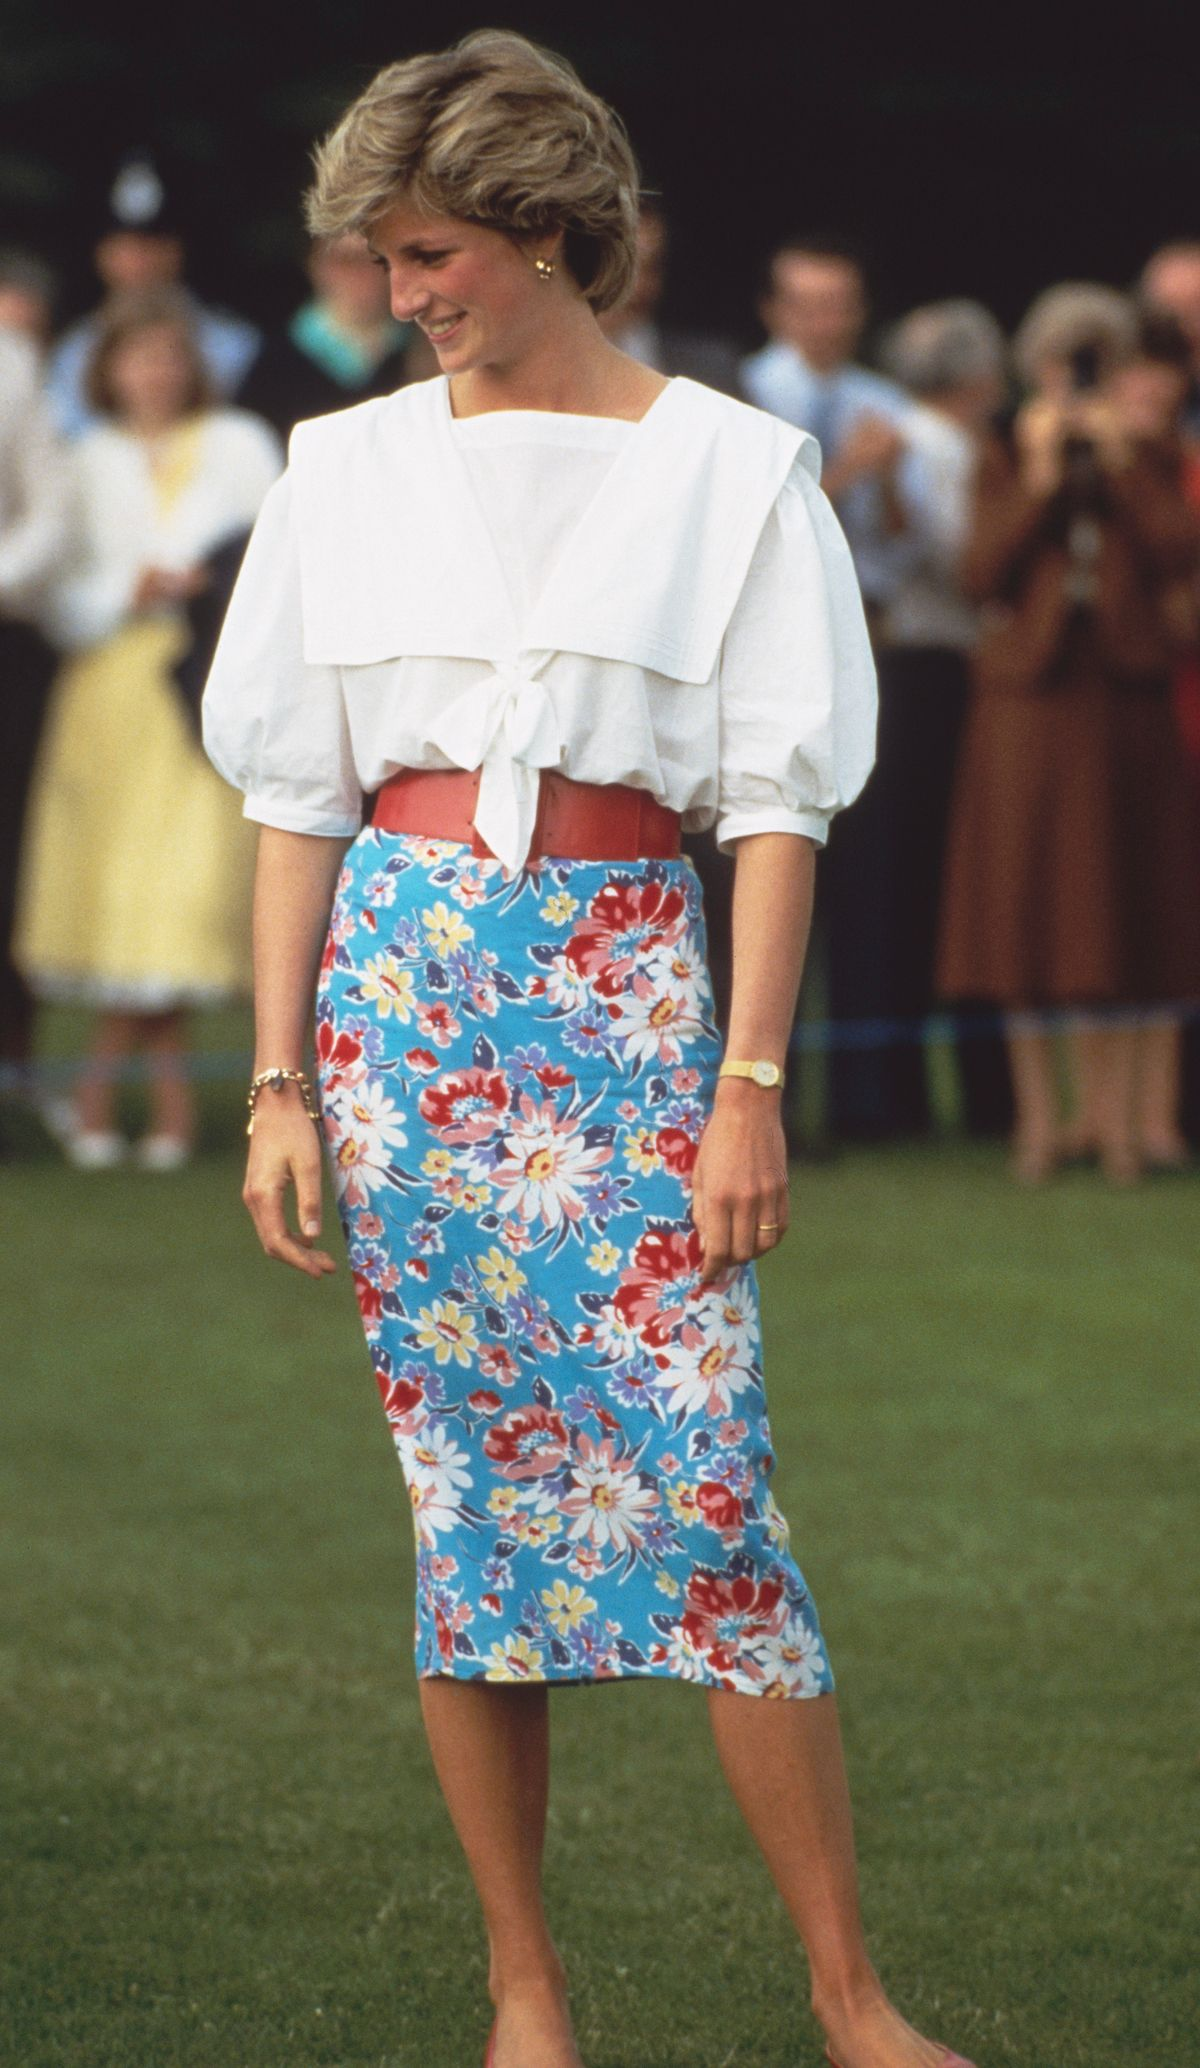 picture 22 Princess Diana Outfits Well Never Tire of Looking At